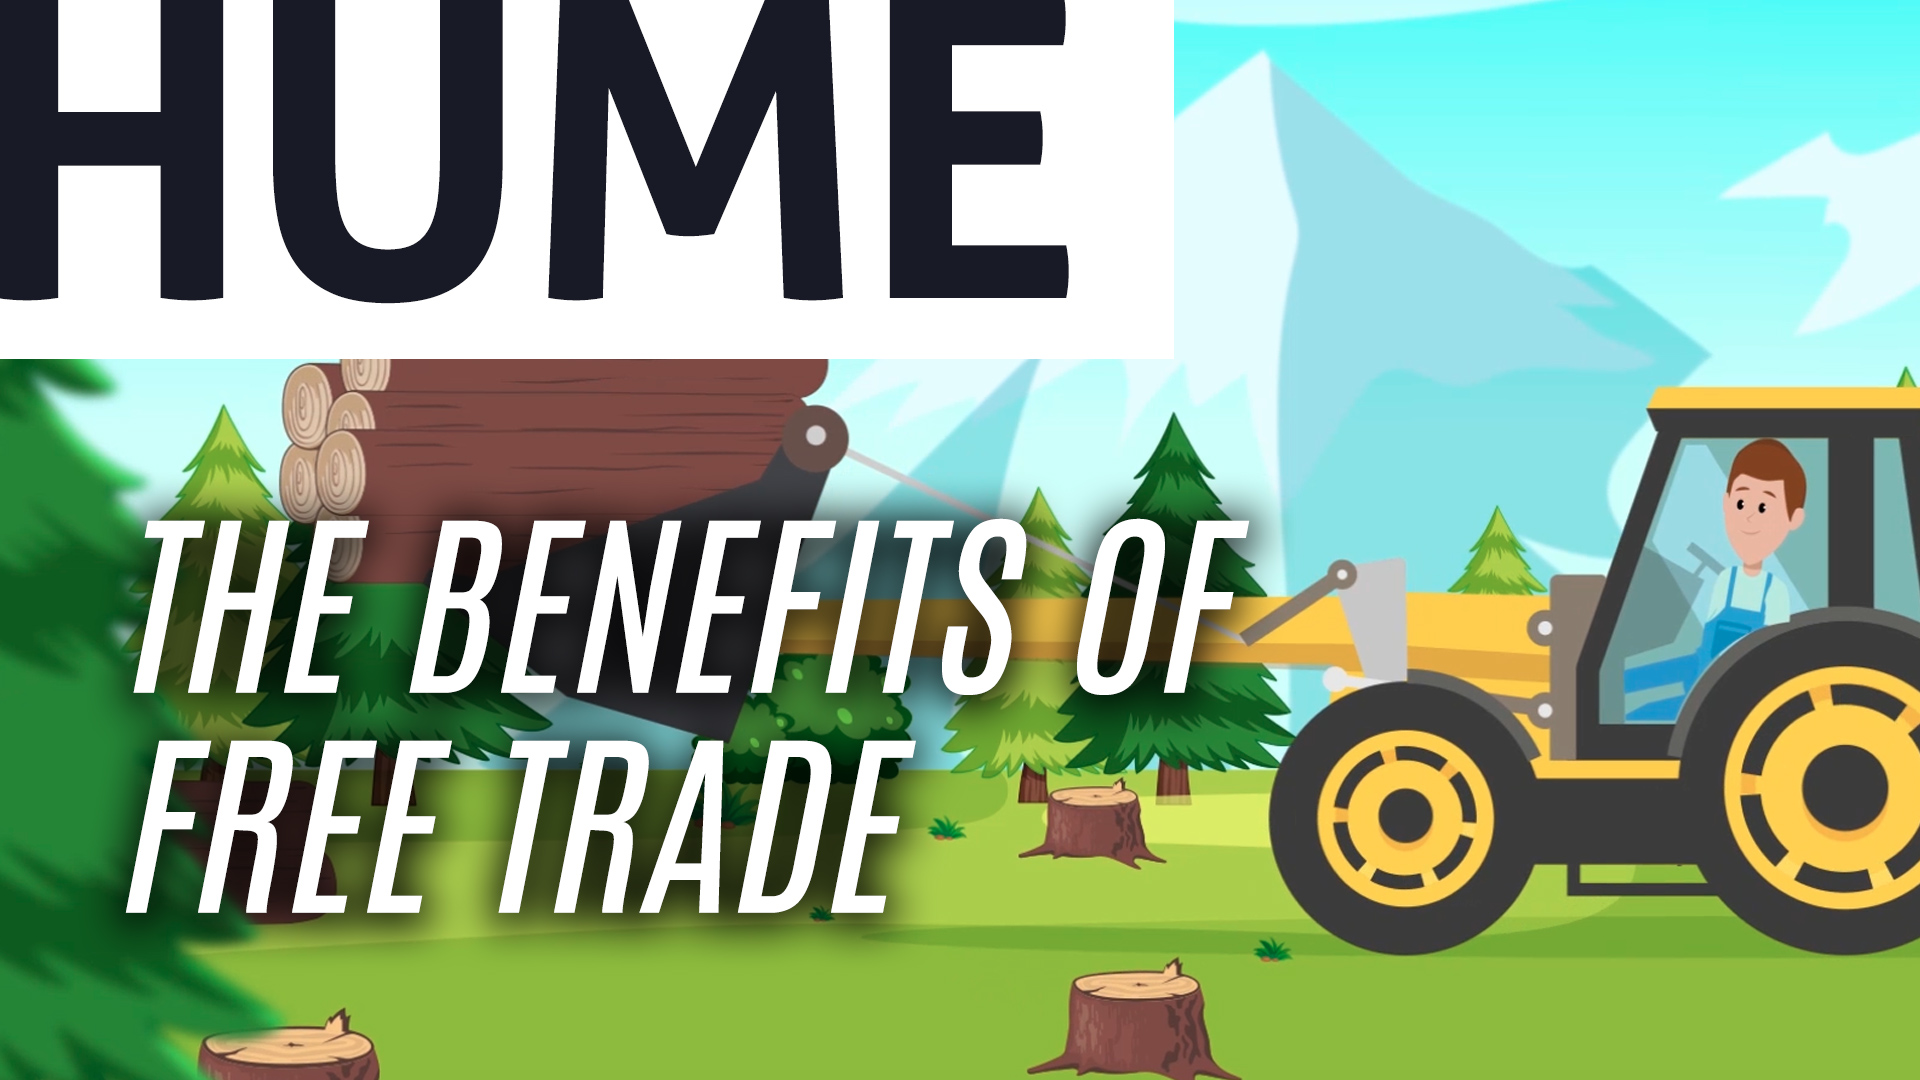 The Benefits of Free Trade